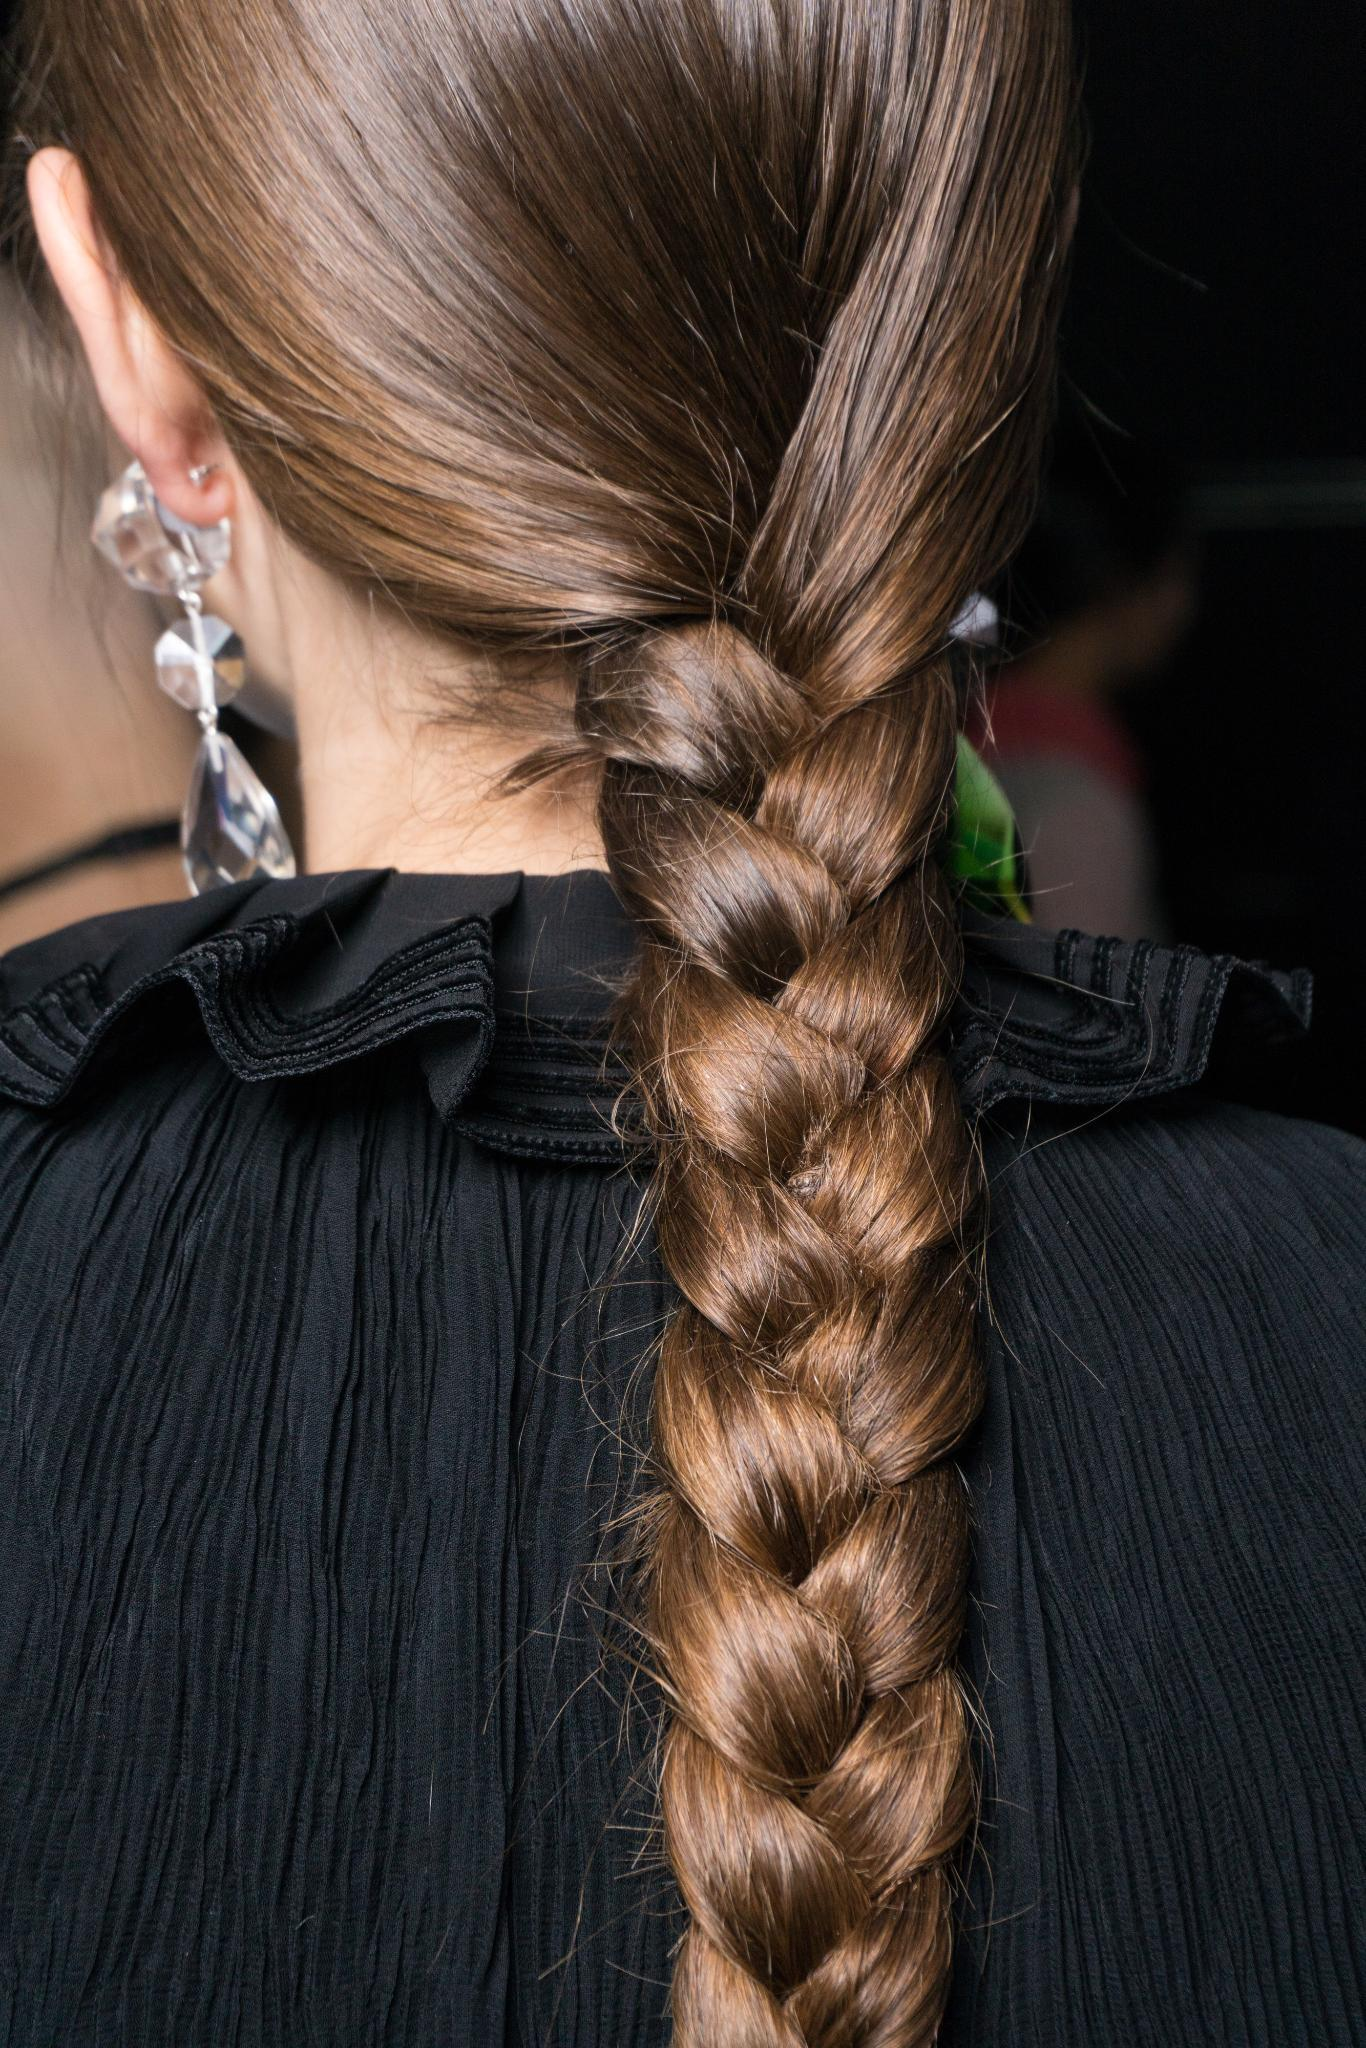 Thick hair: Shot of a model with long braided hair, wearing all black backstage